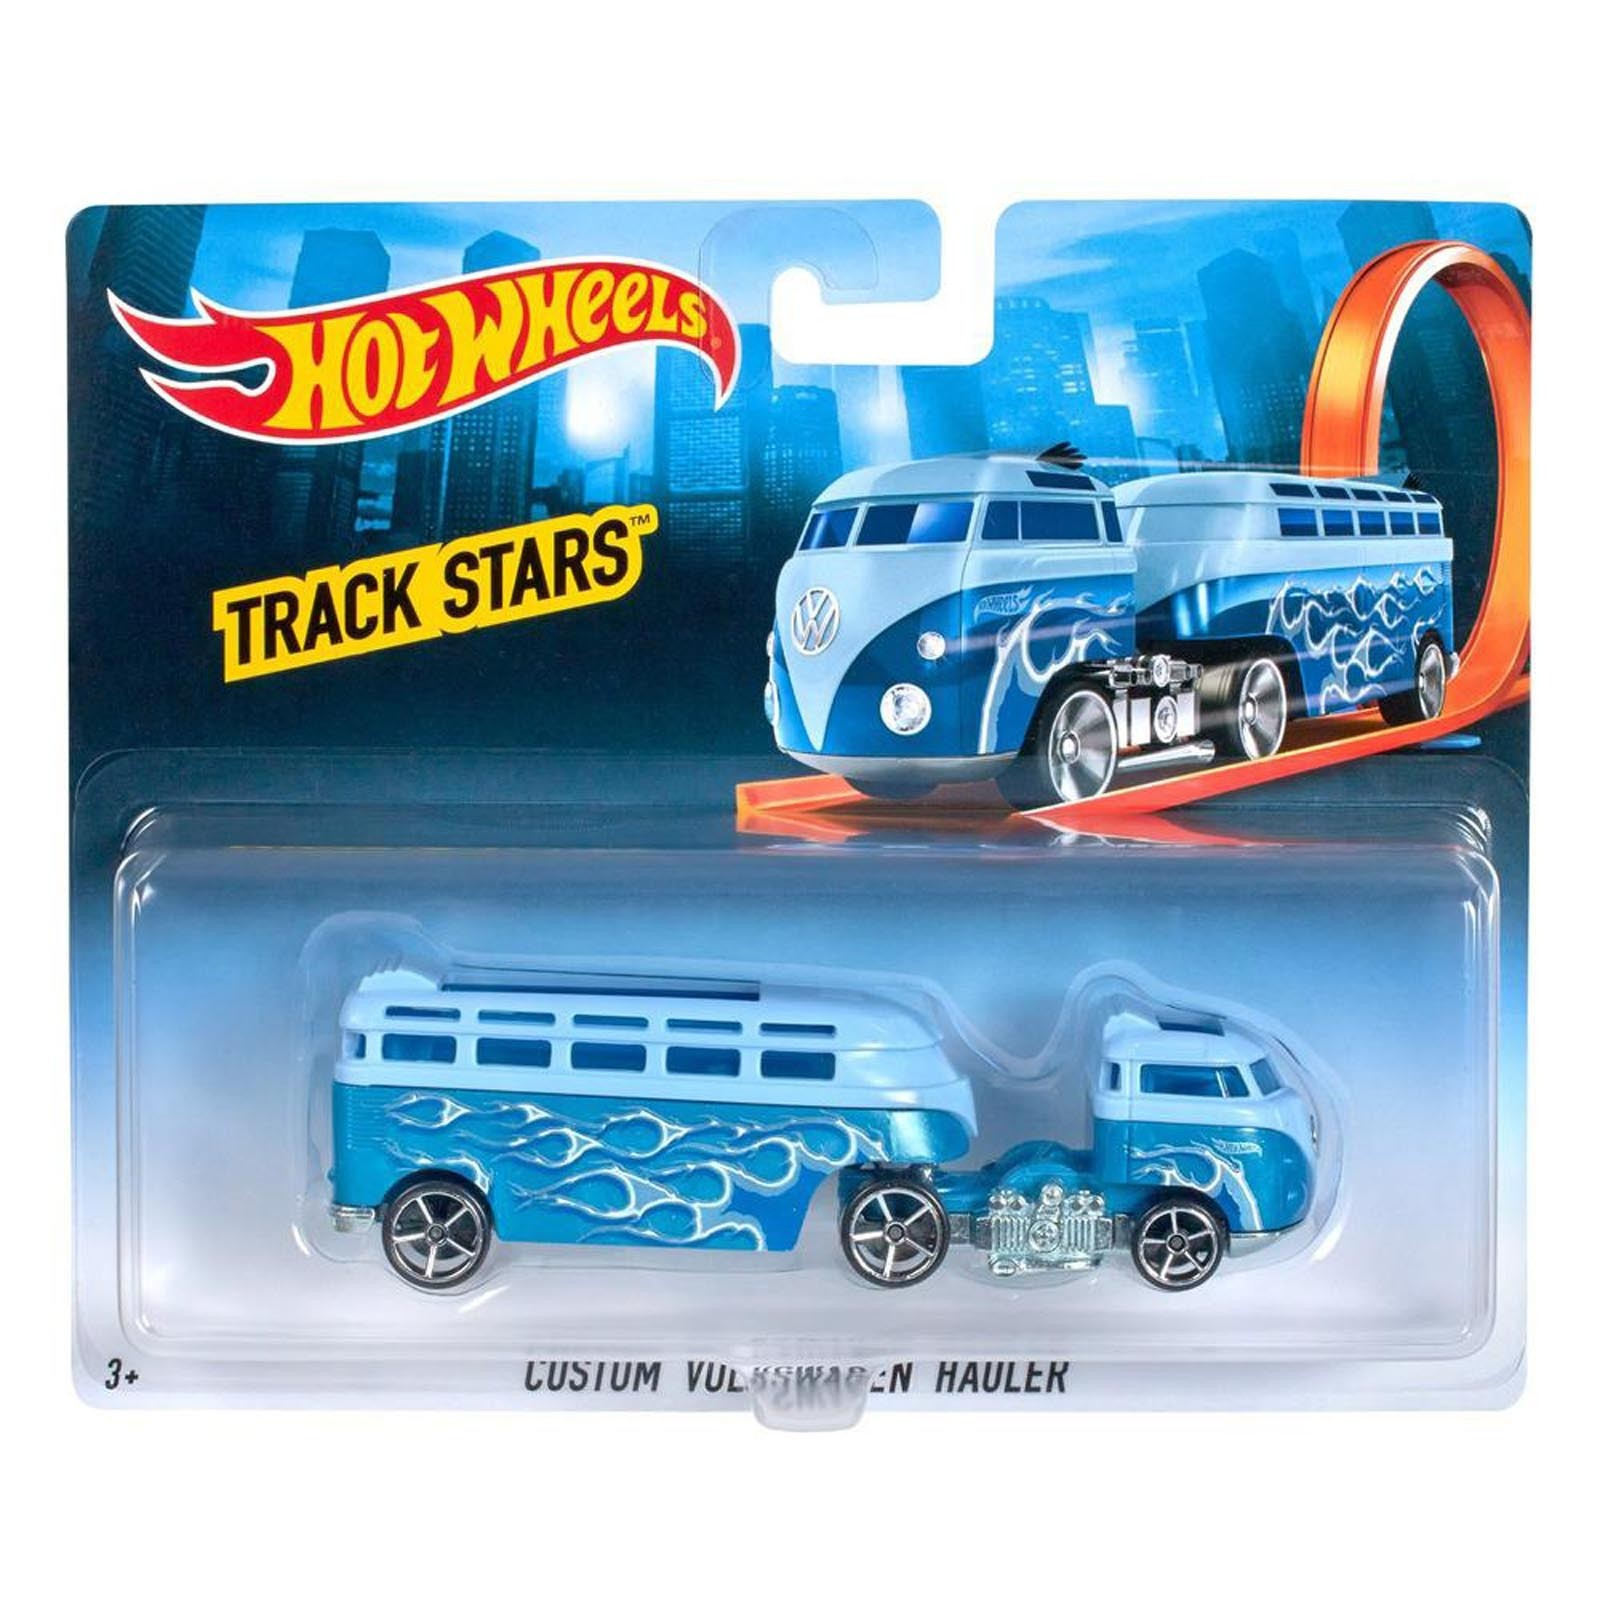 Hot Wheels - Caminhão Custom Volkswagen Hauler - CGJ45